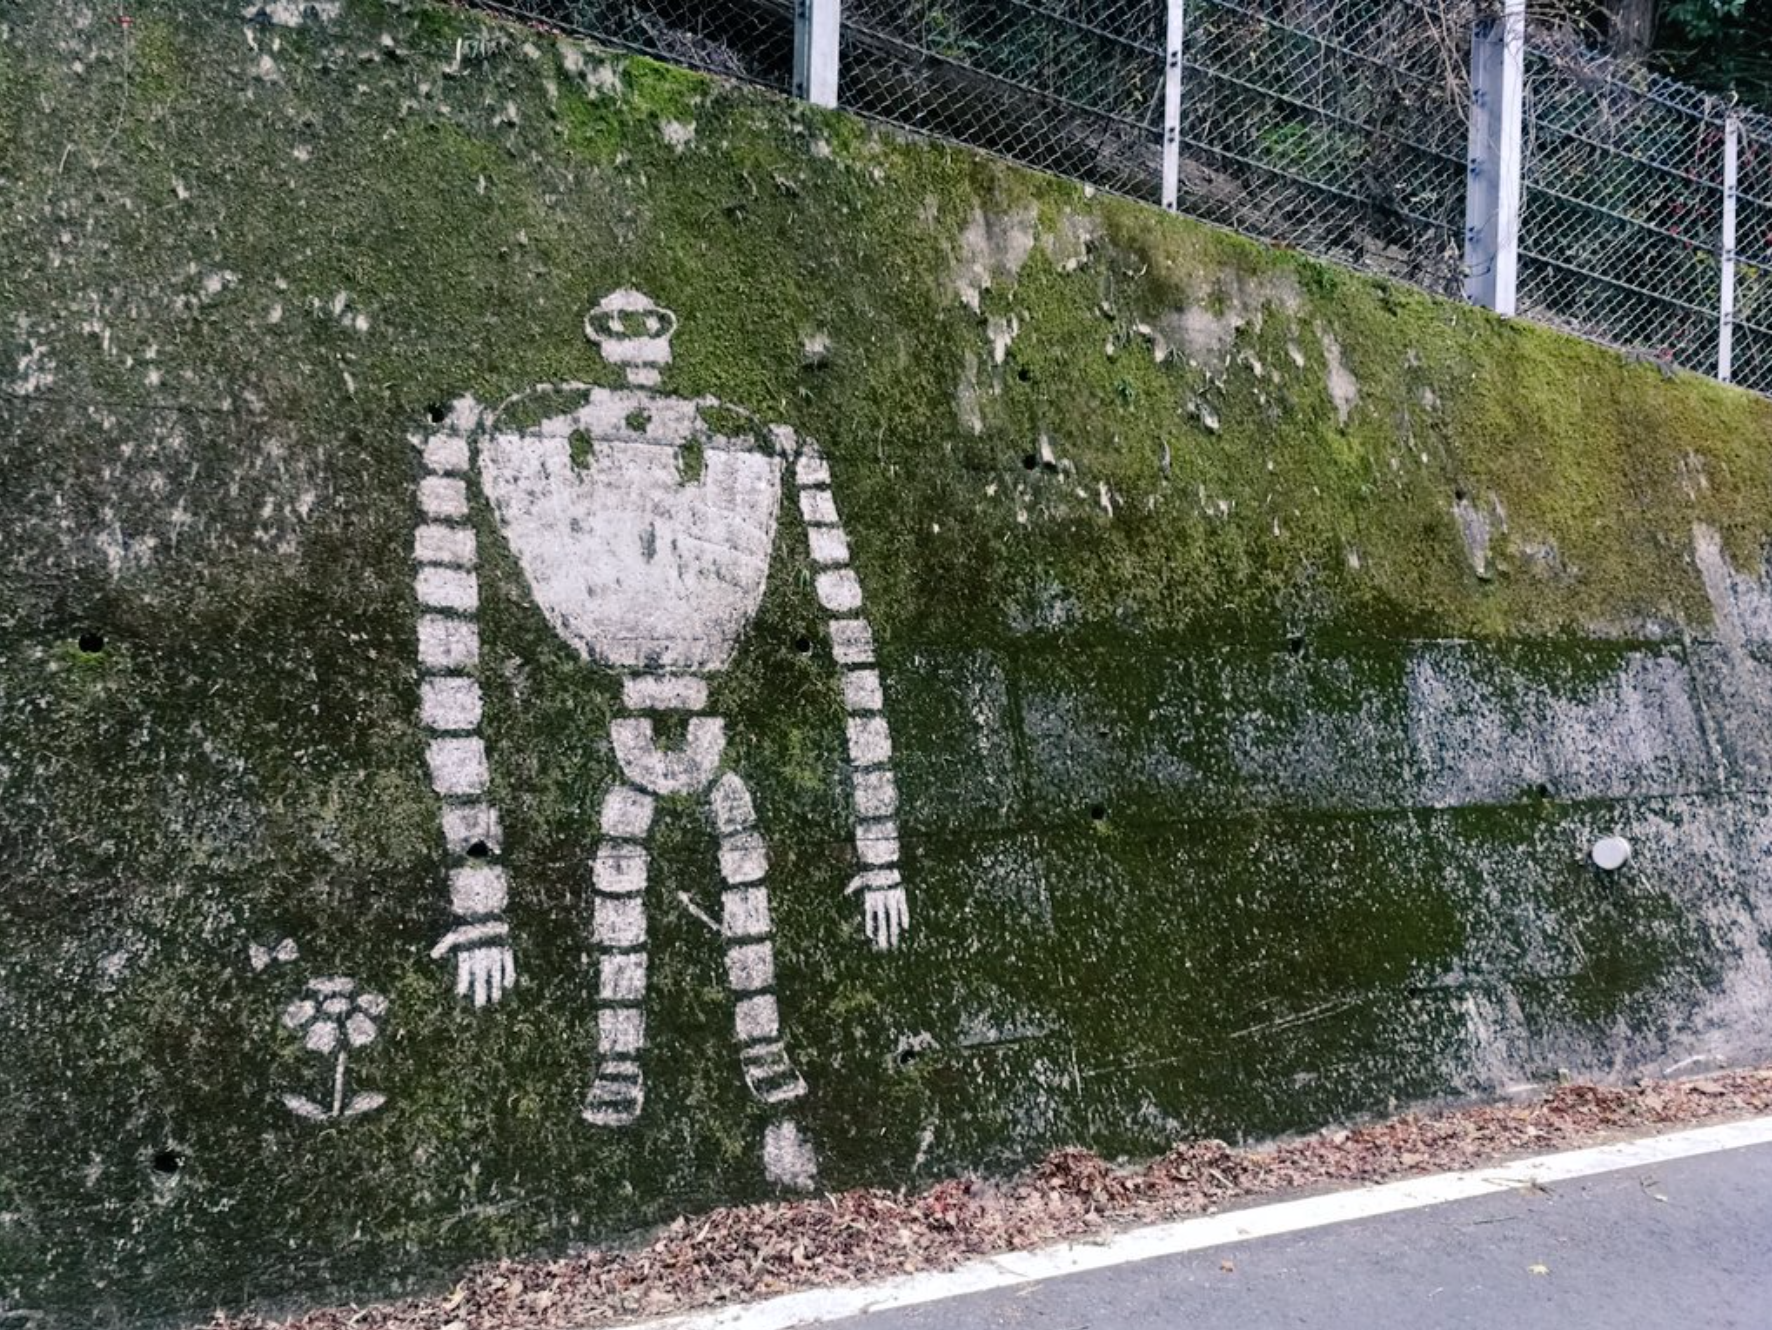 Ghibli Moss Art Discovered Along Mountain Road In Japan